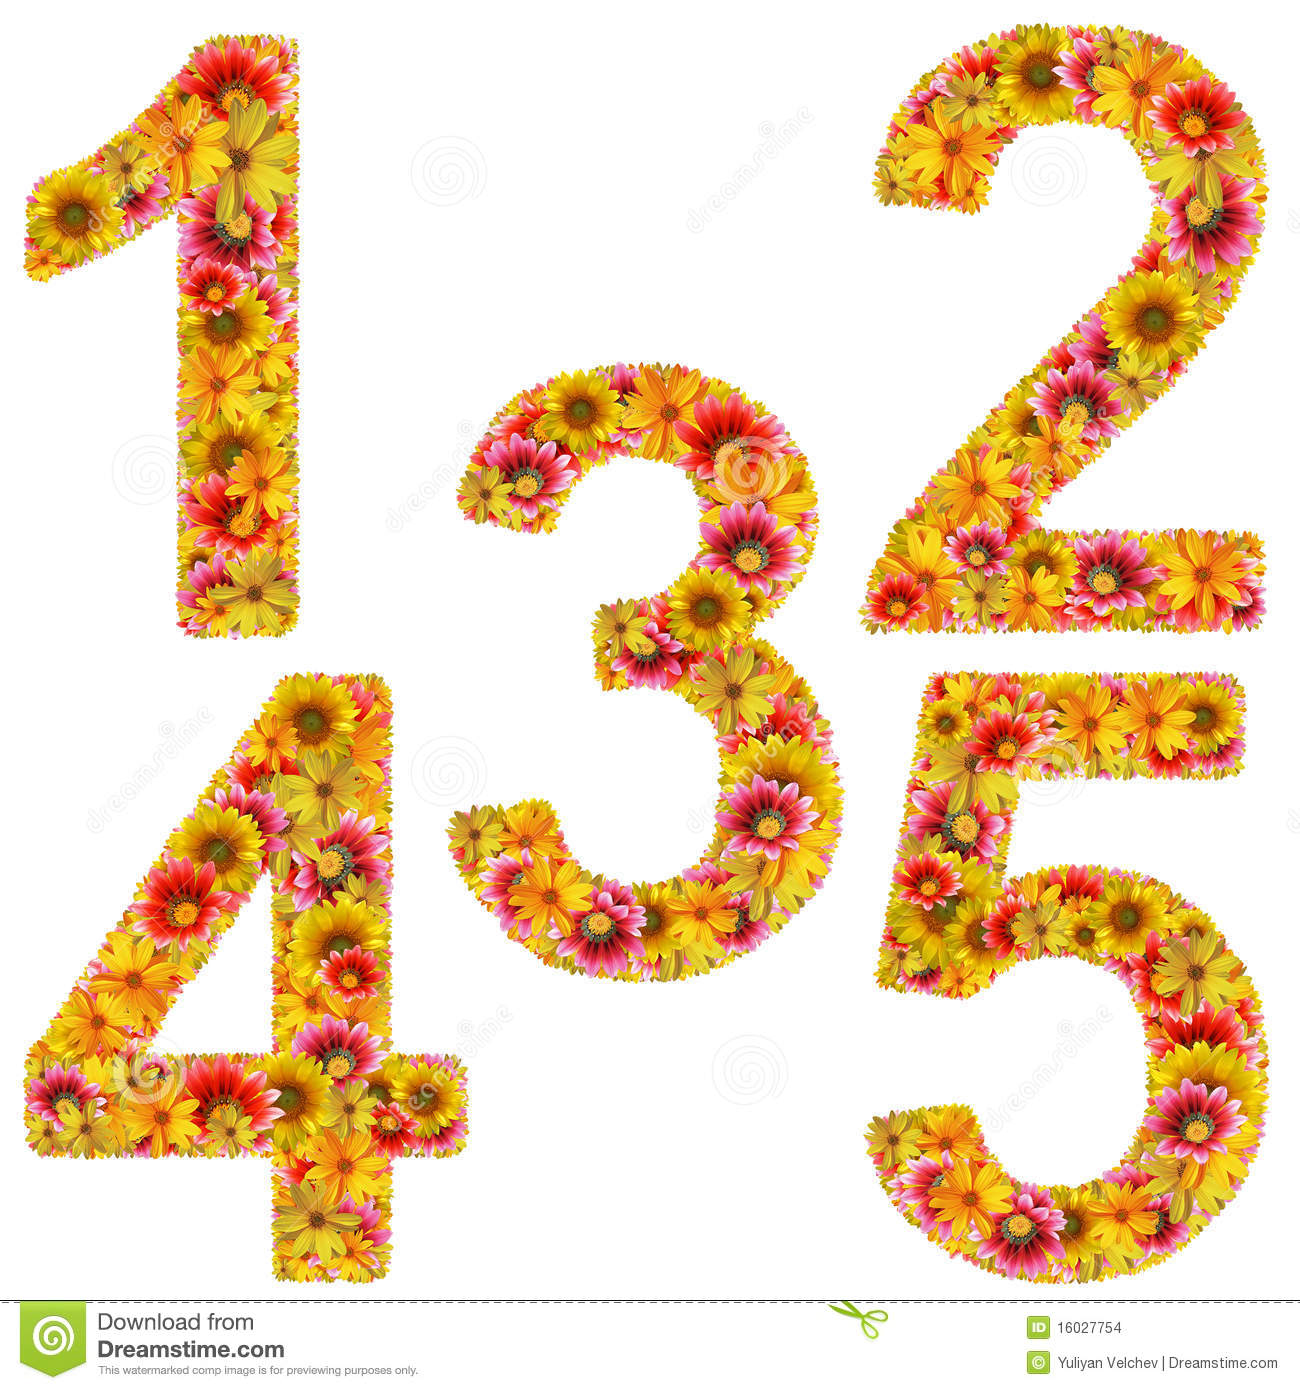 Clipart numbers 1 5 banner library Clipart numbers 1 5 - ClipartFest banner library